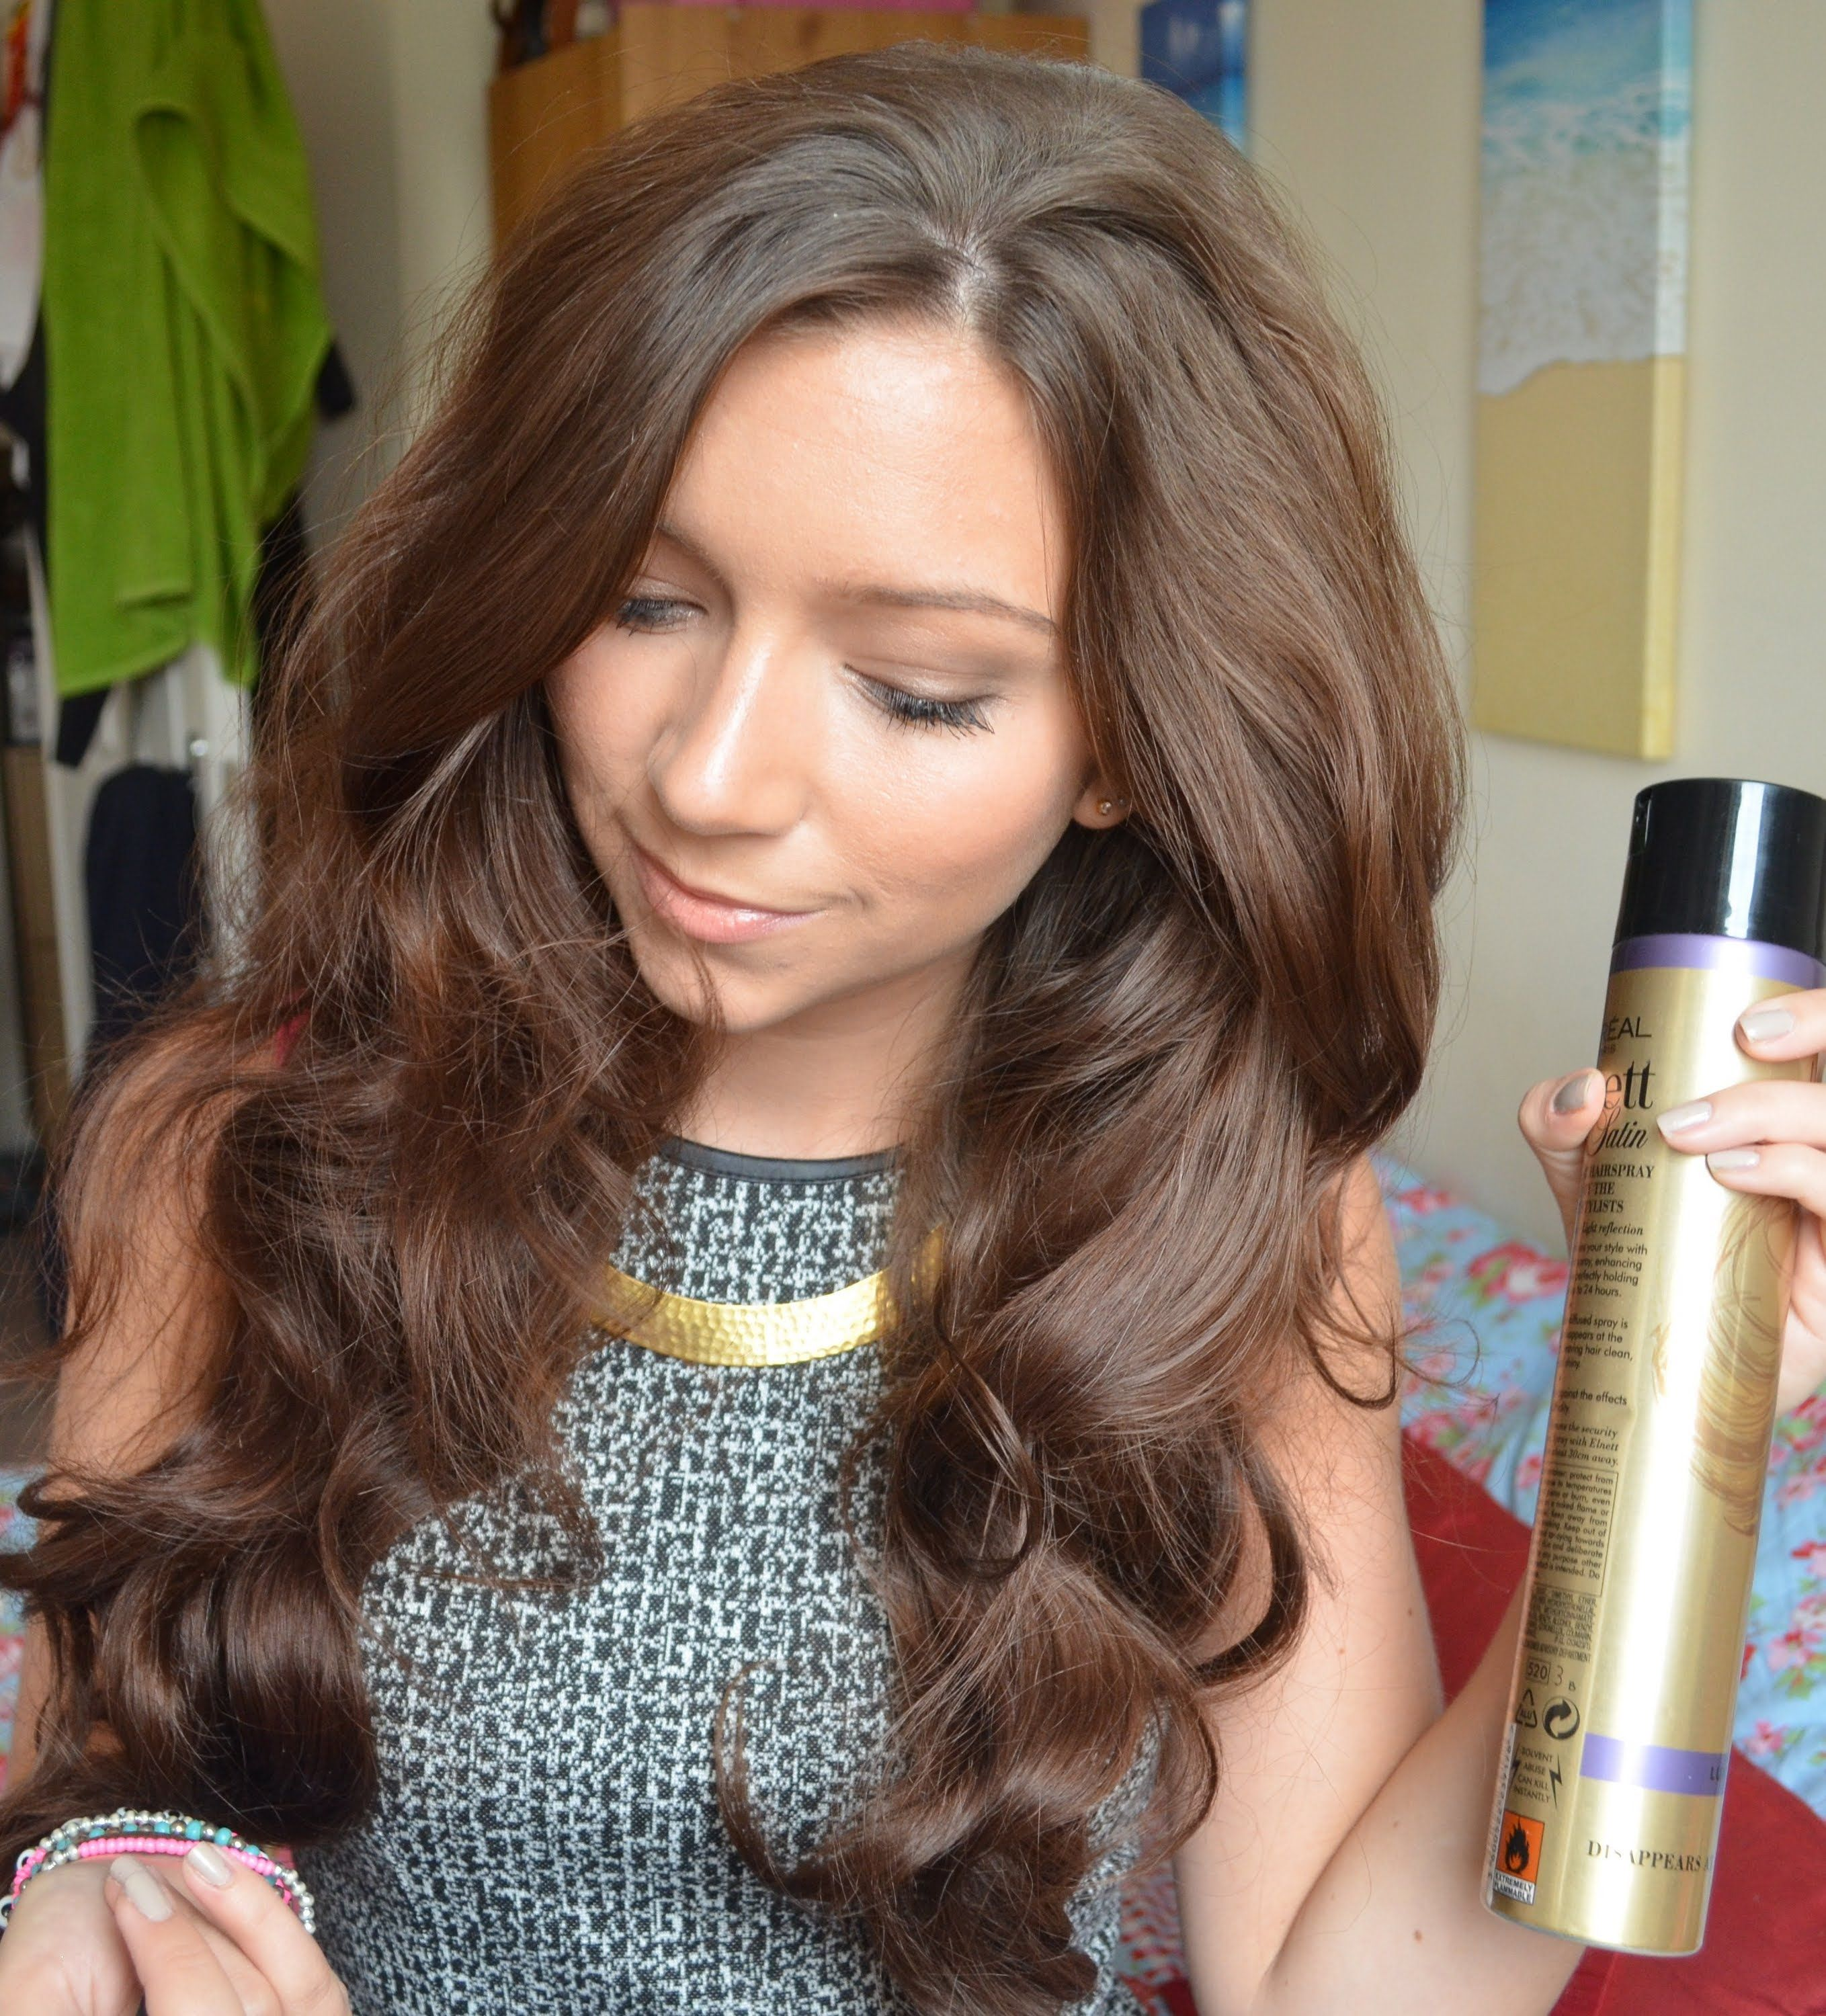 Hair red Dark with black underneath, Style Real-life challenge: 6 items, 6 days